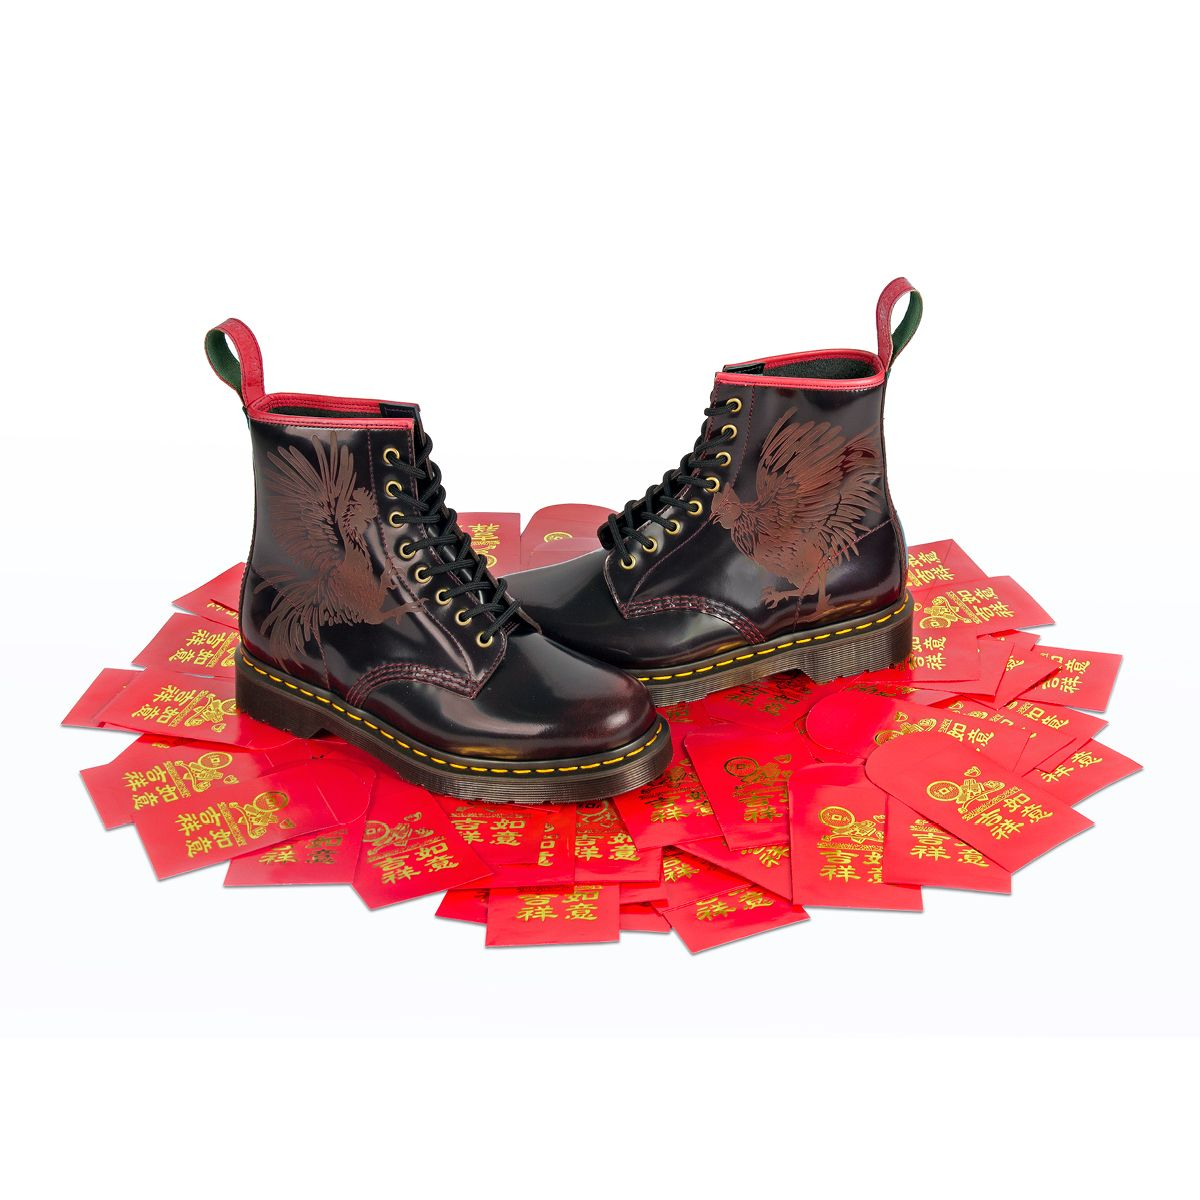 YEAR OF THE ROOSTER: Let your feet celebrate Chinese New